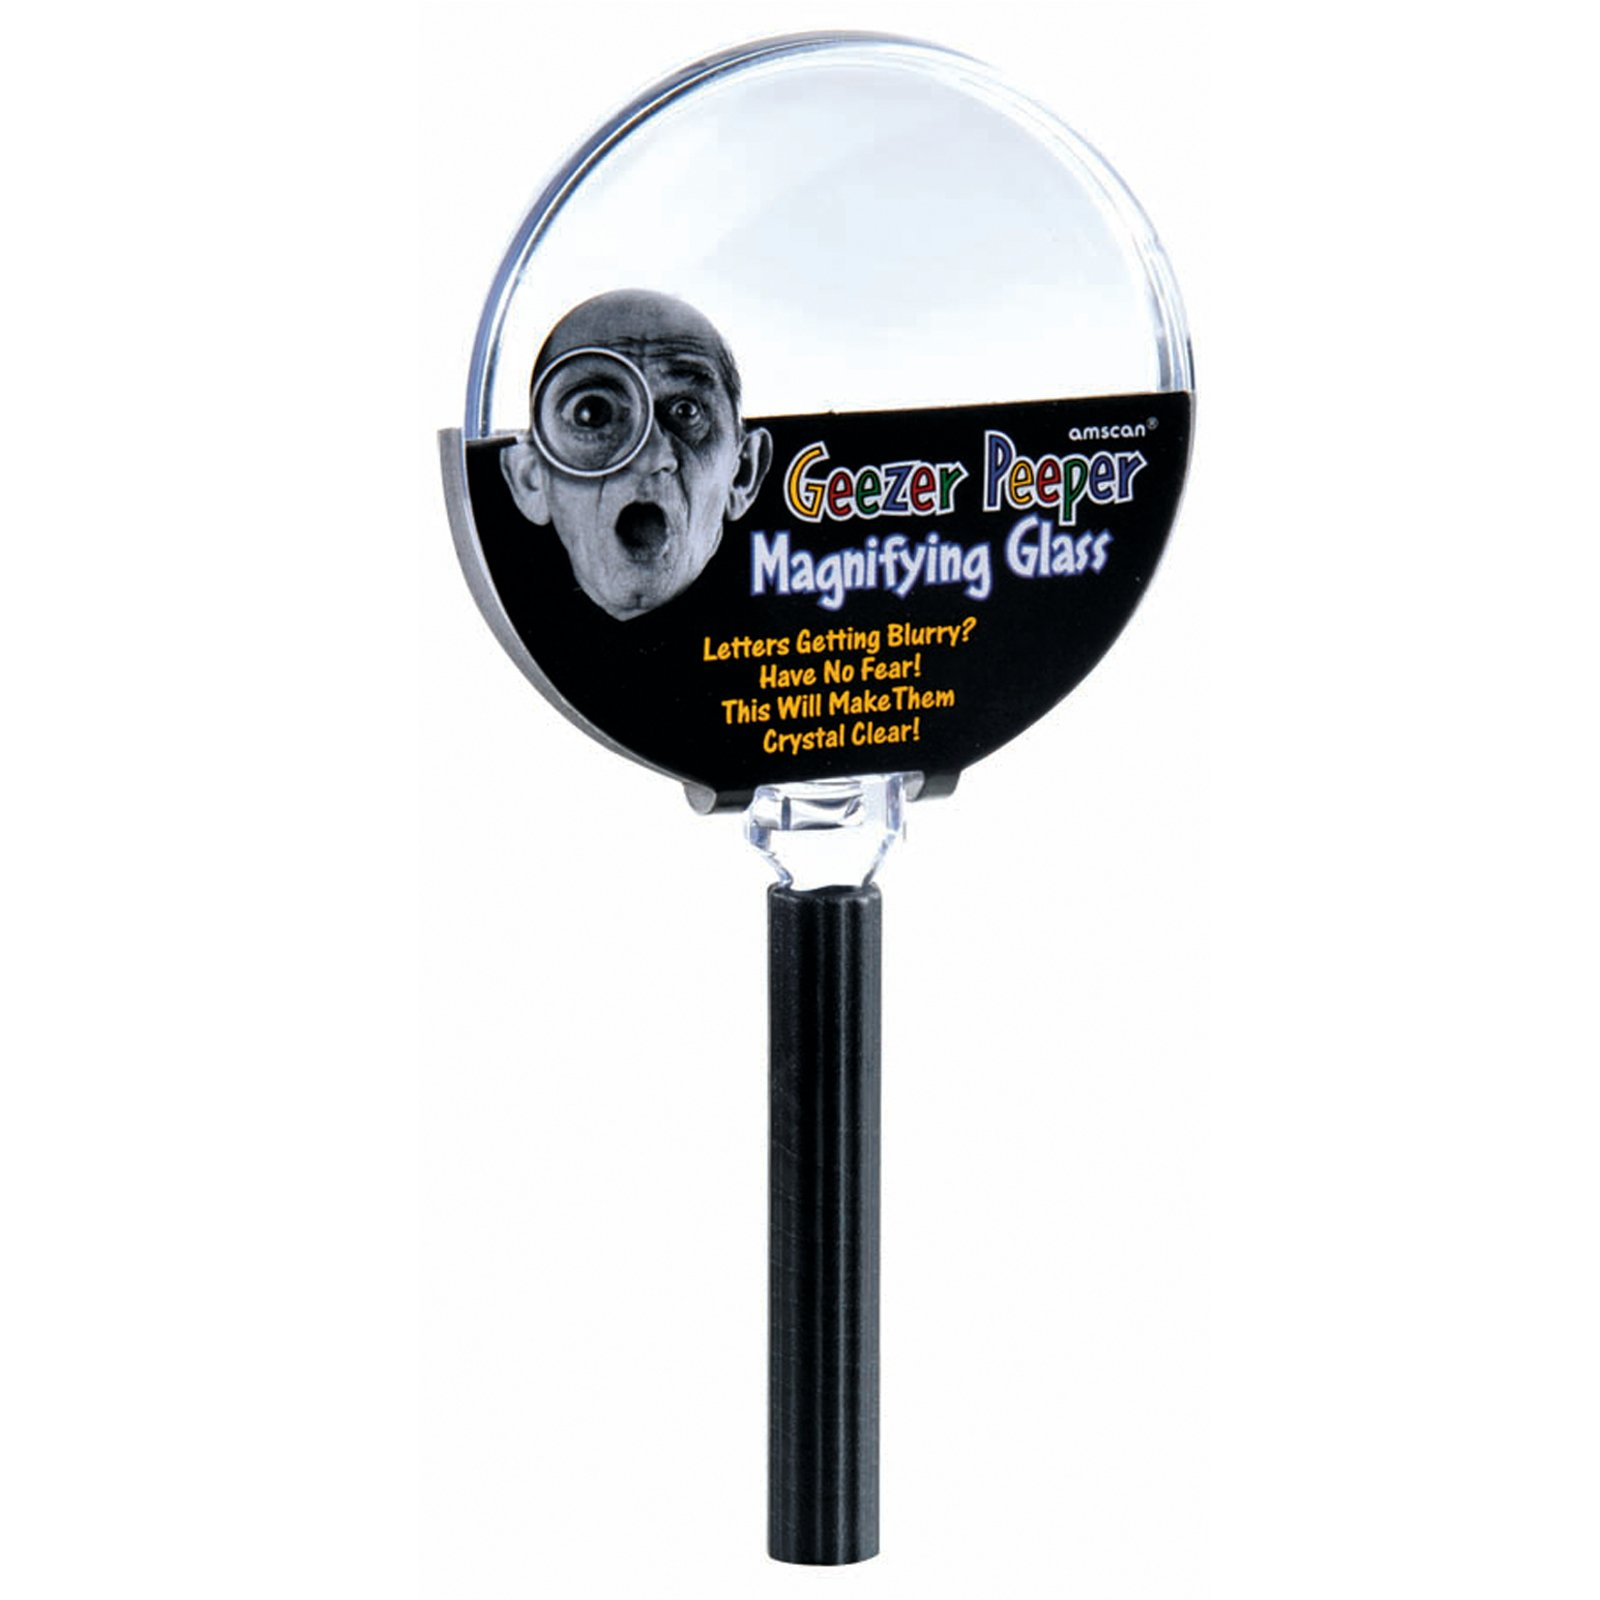 Over the Hill Geezer Peeper Magnifying Glass